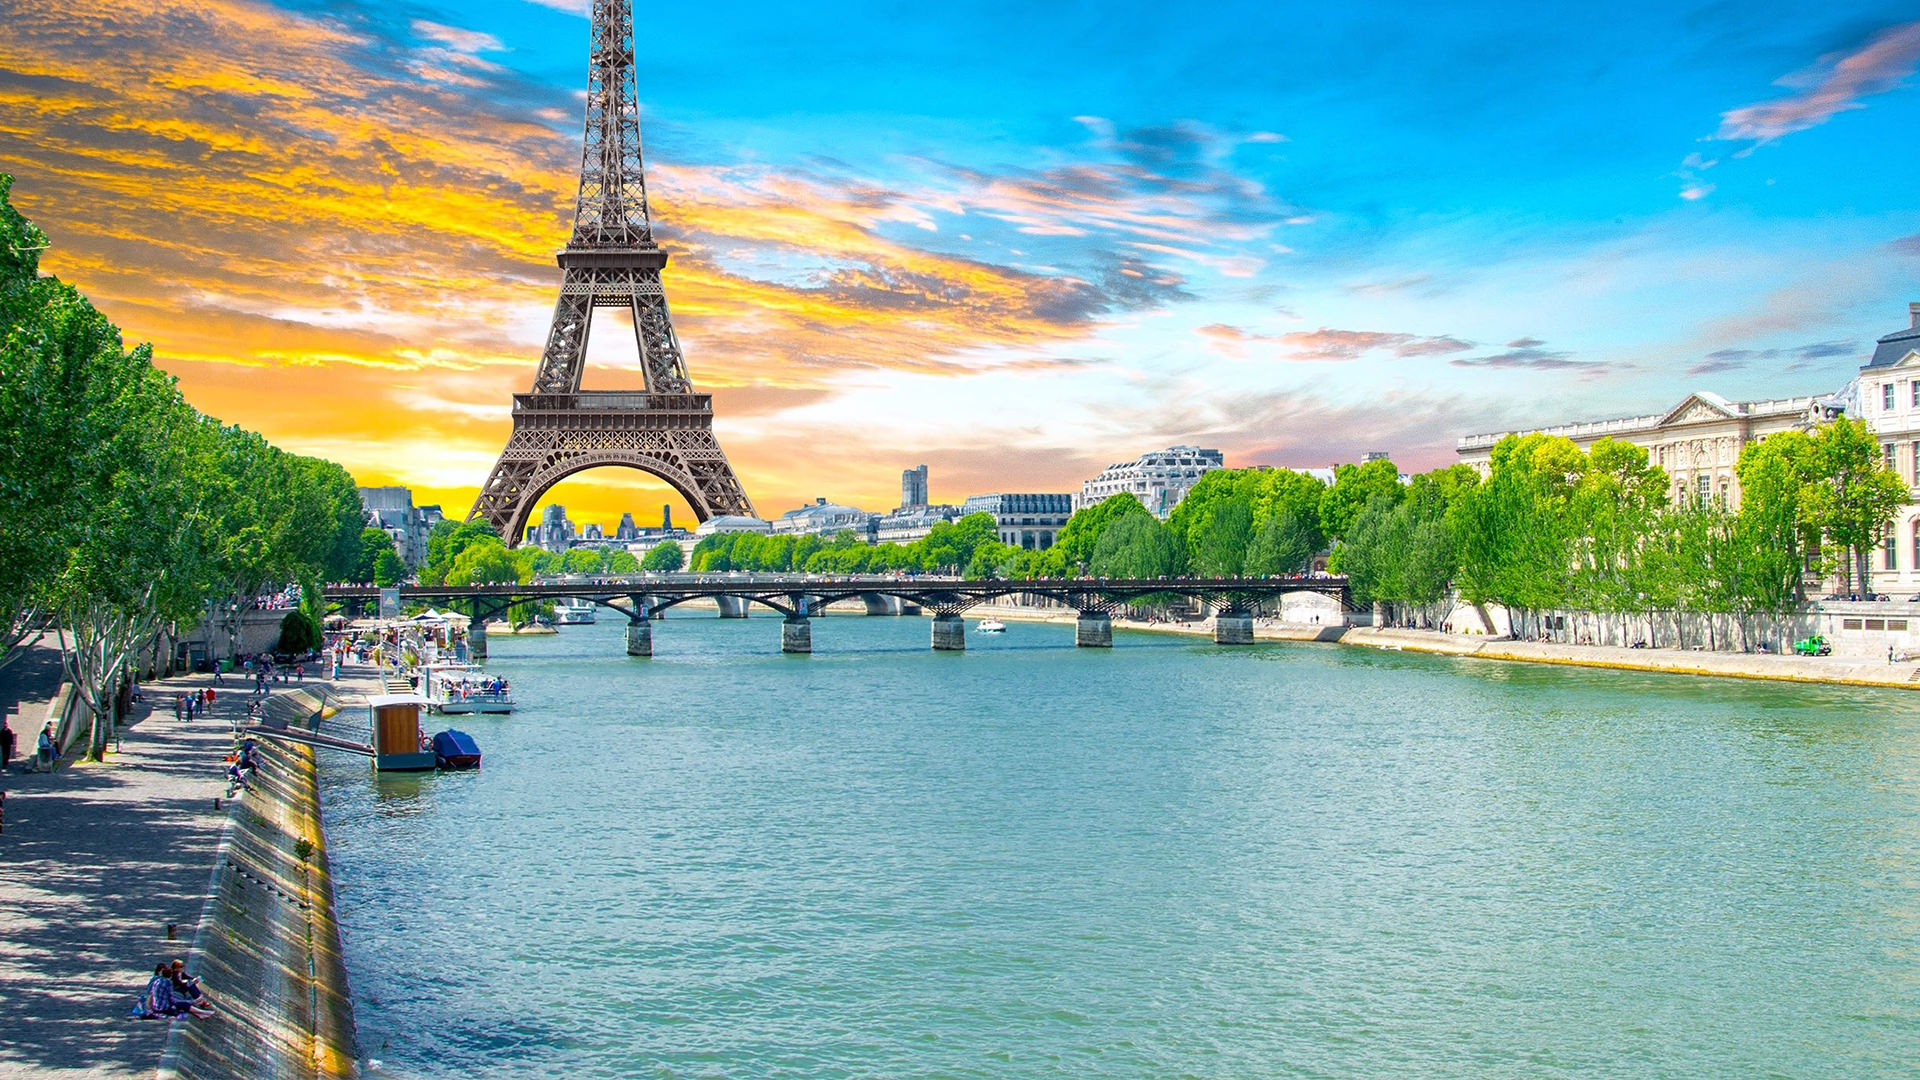 A view of the Eifle tower in Paris, France